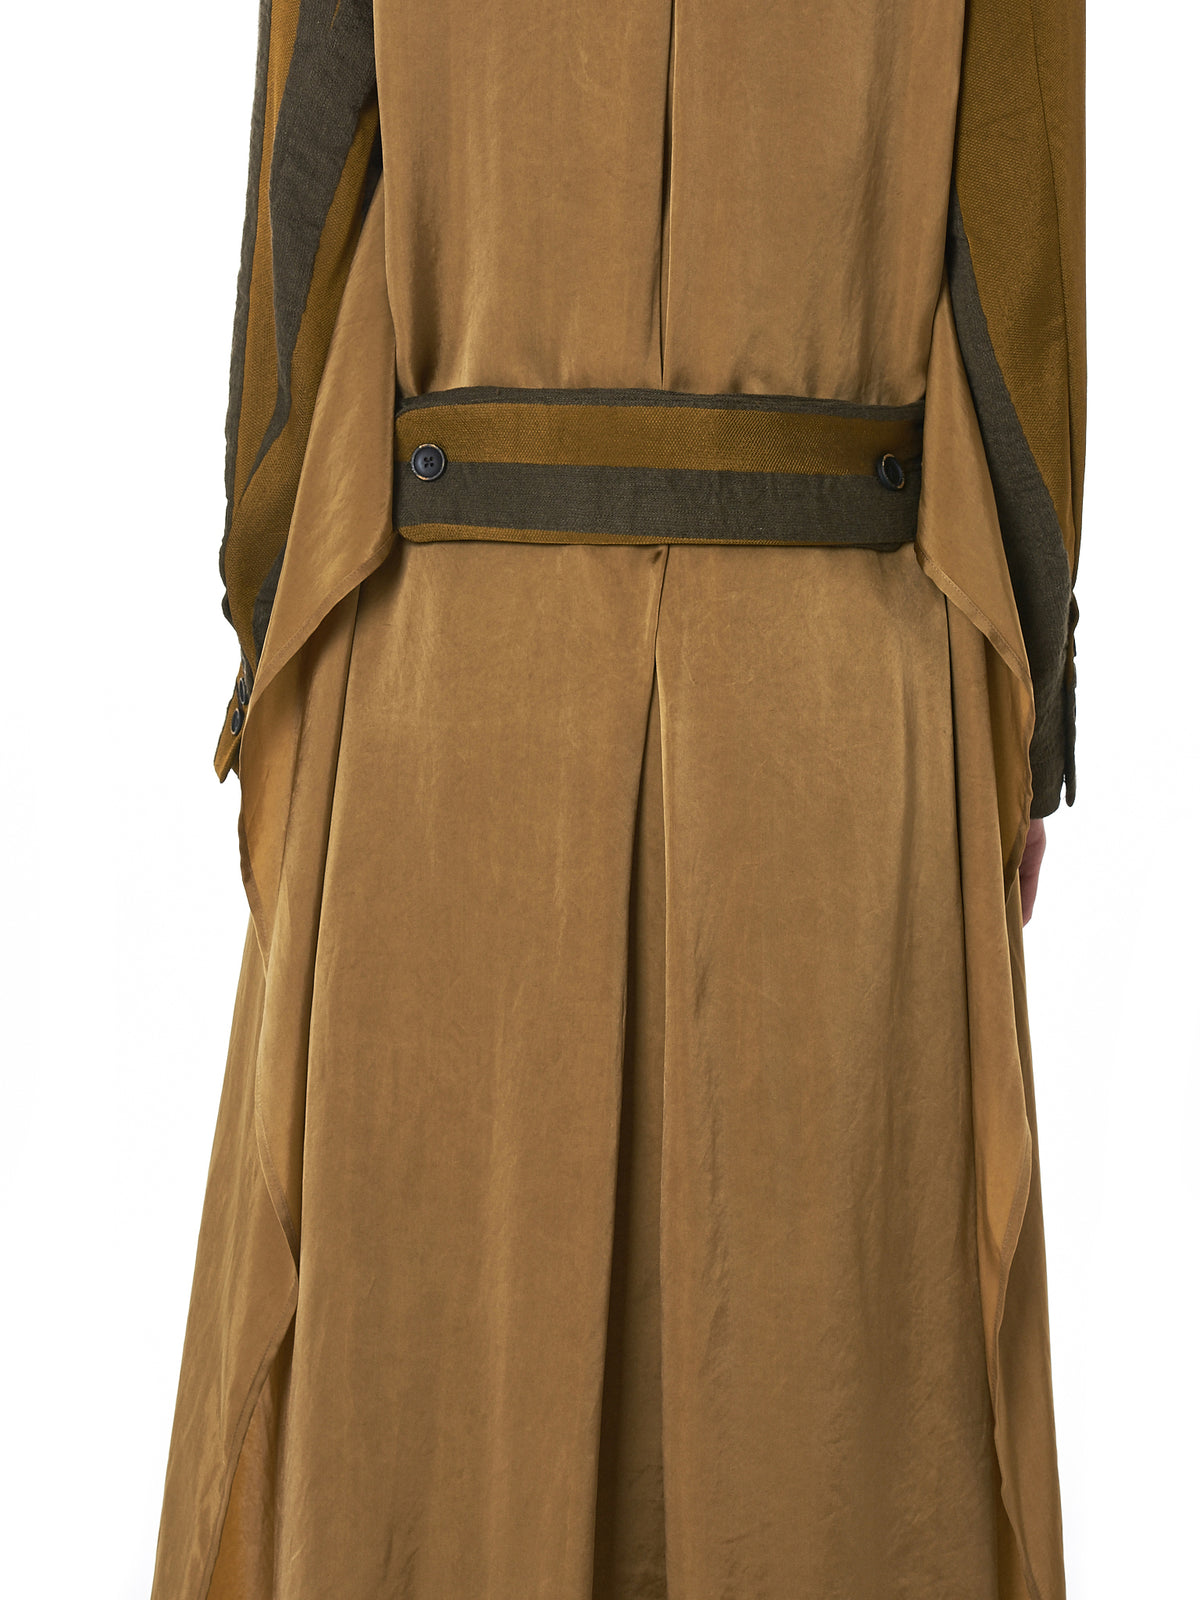 'Charo' Lapelless Coat (UW8096-MUSTARD-BROWN)